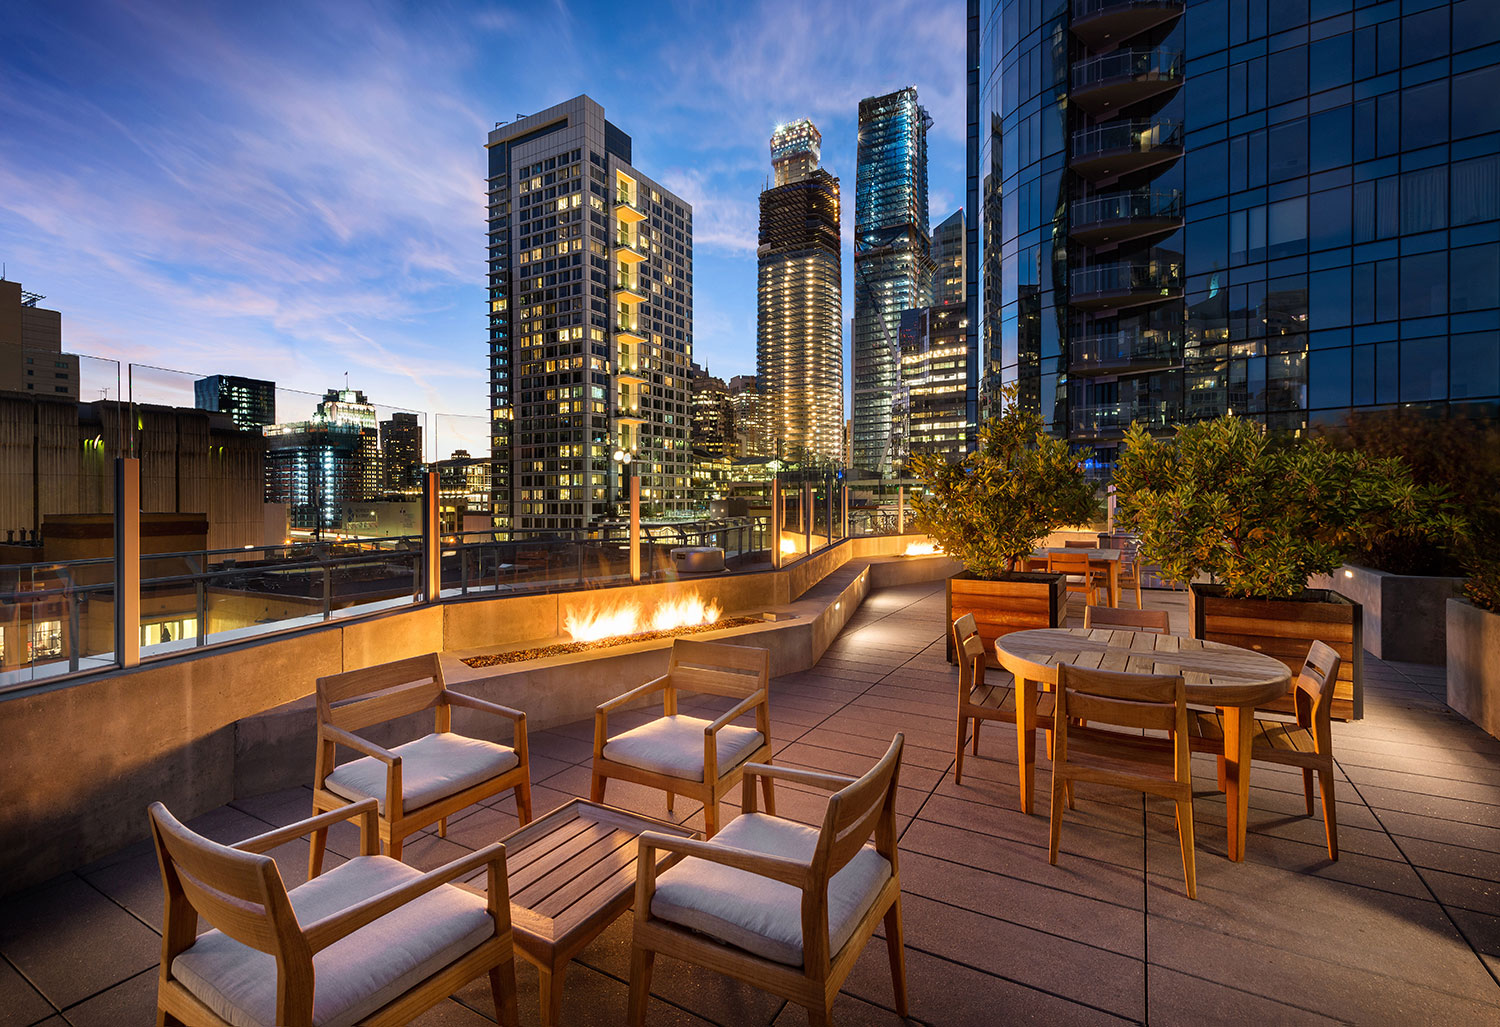 Luxury condominium towers in San Francisco CA